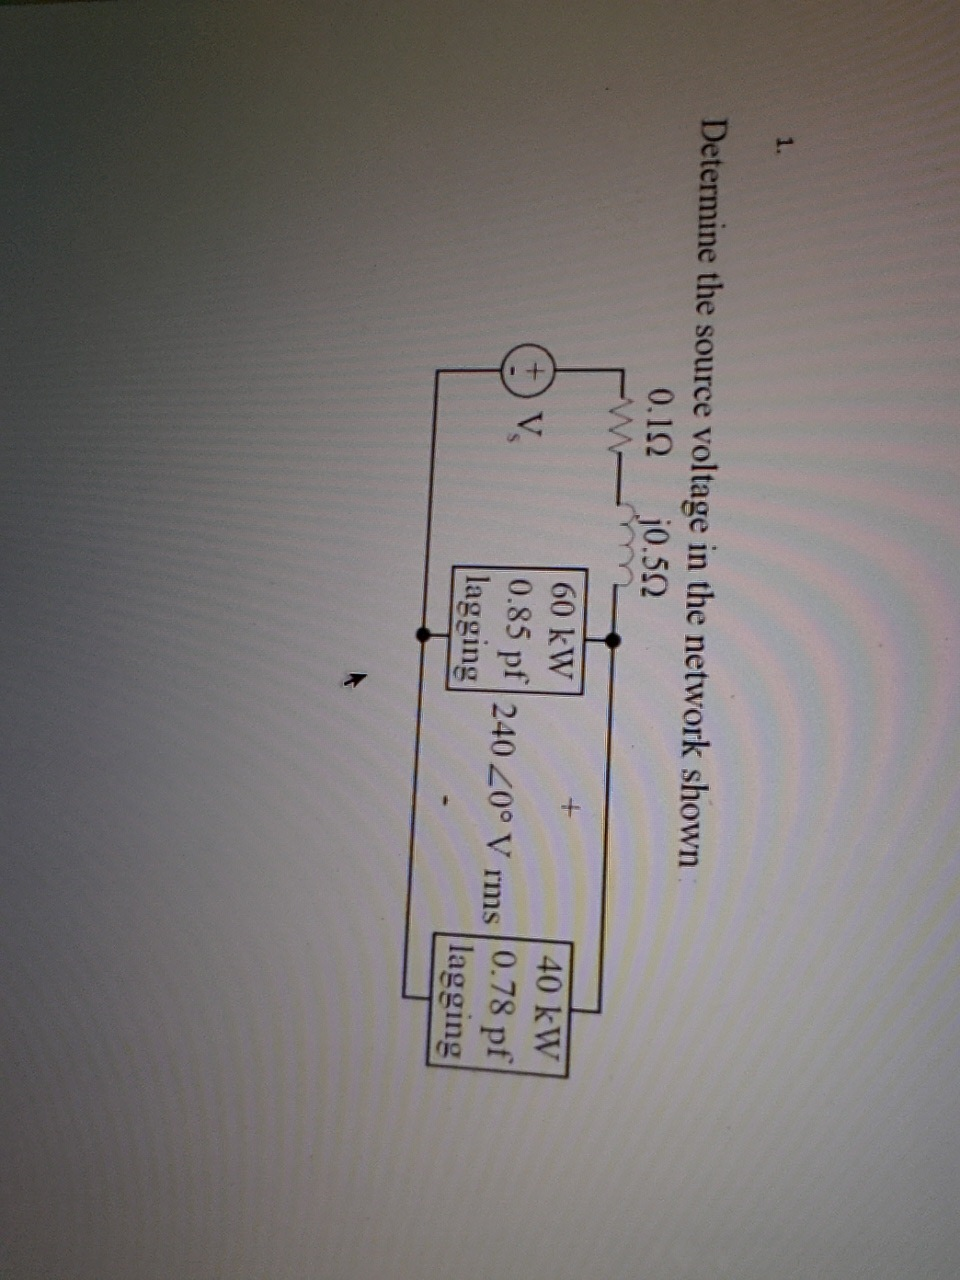 Determine the source voltage in the network shown